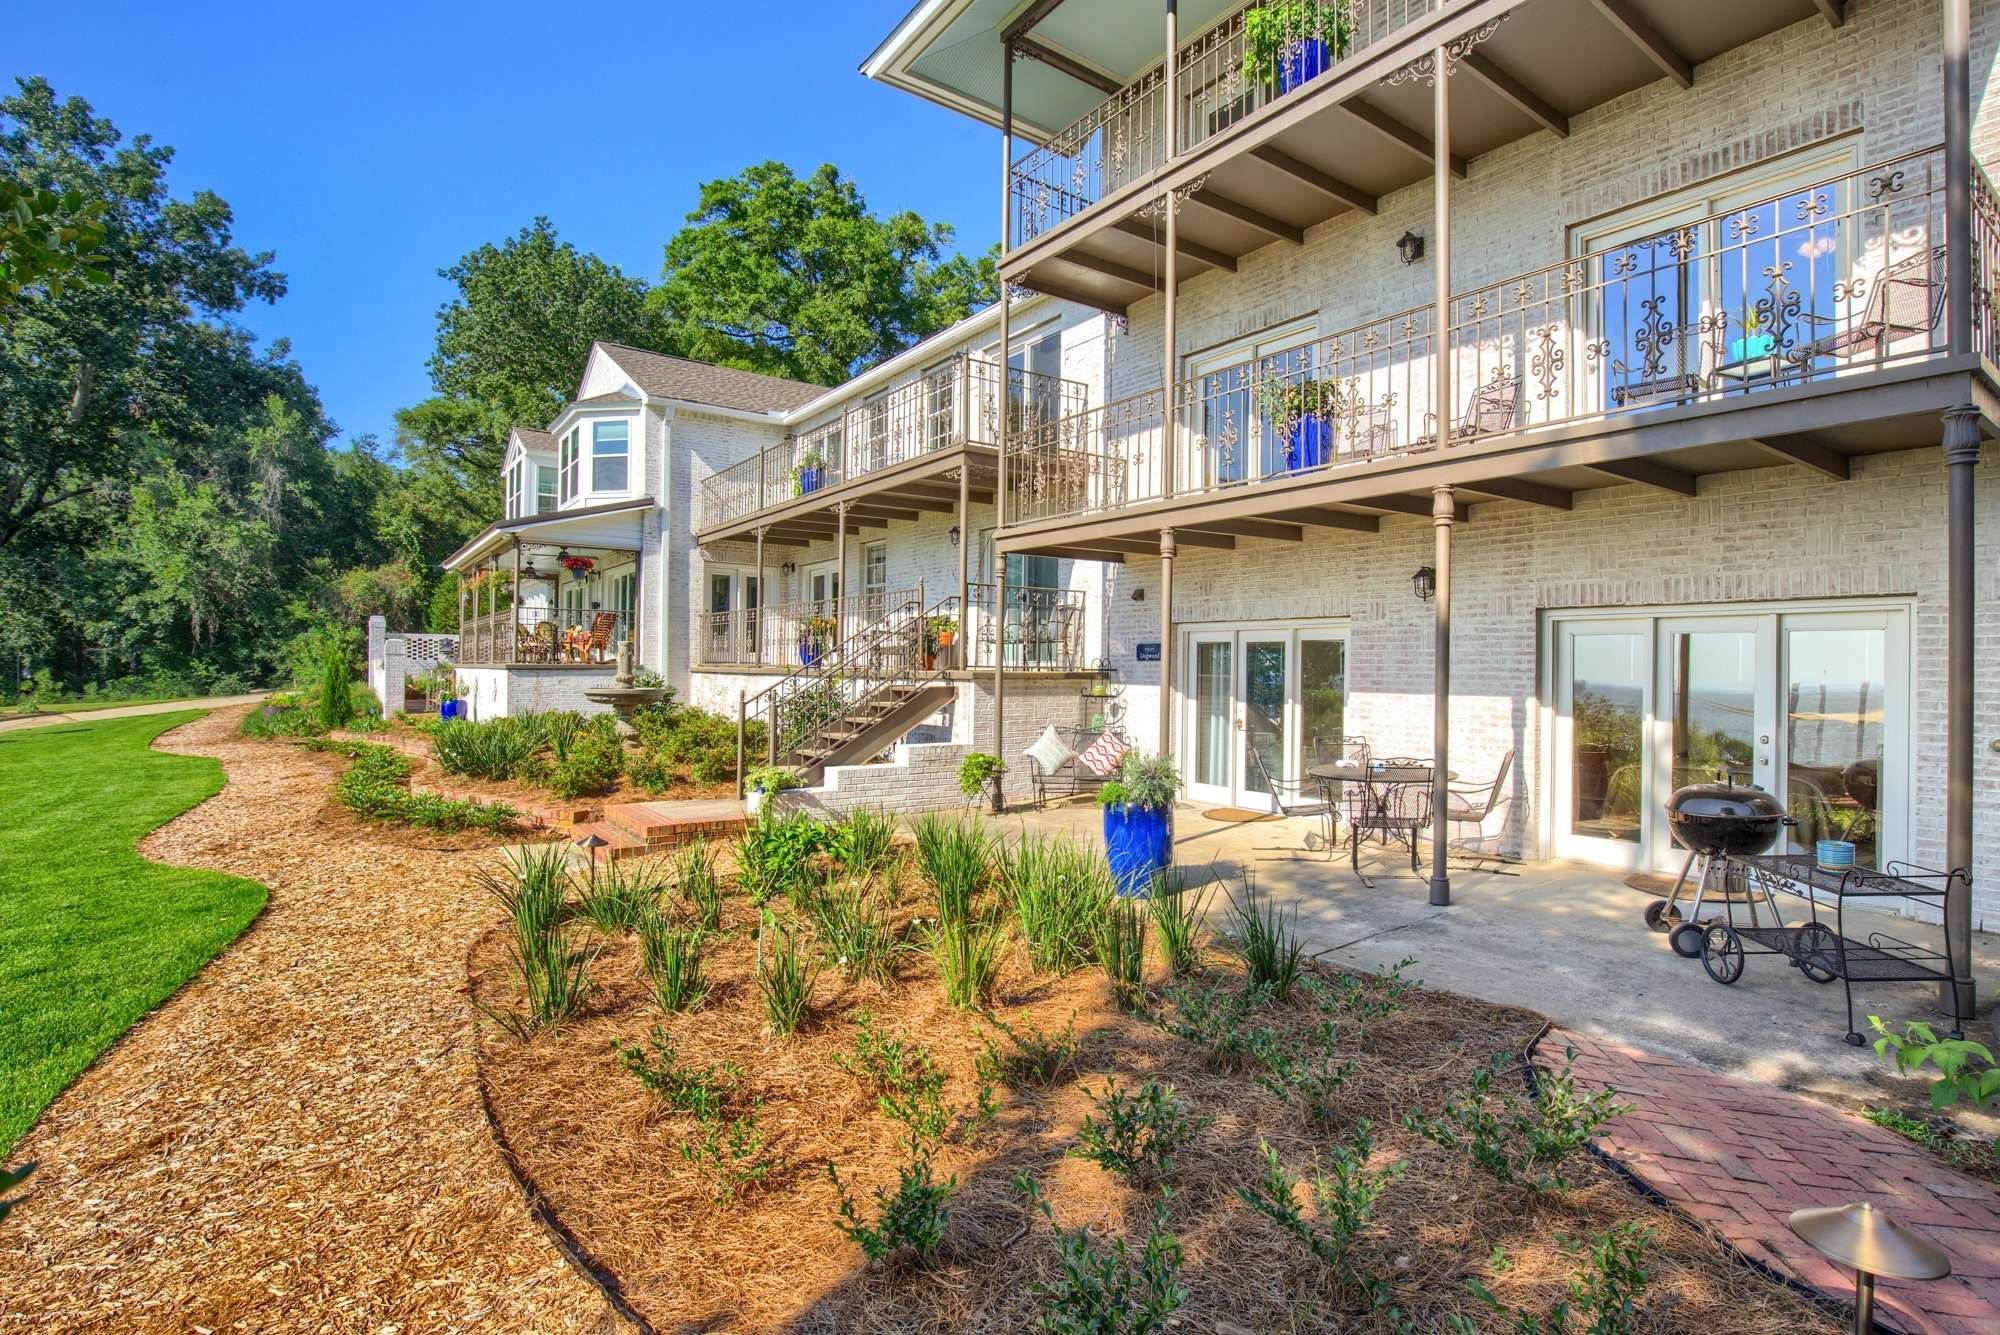 Dogwood Patio Jubilee Suites Fairhope, AL